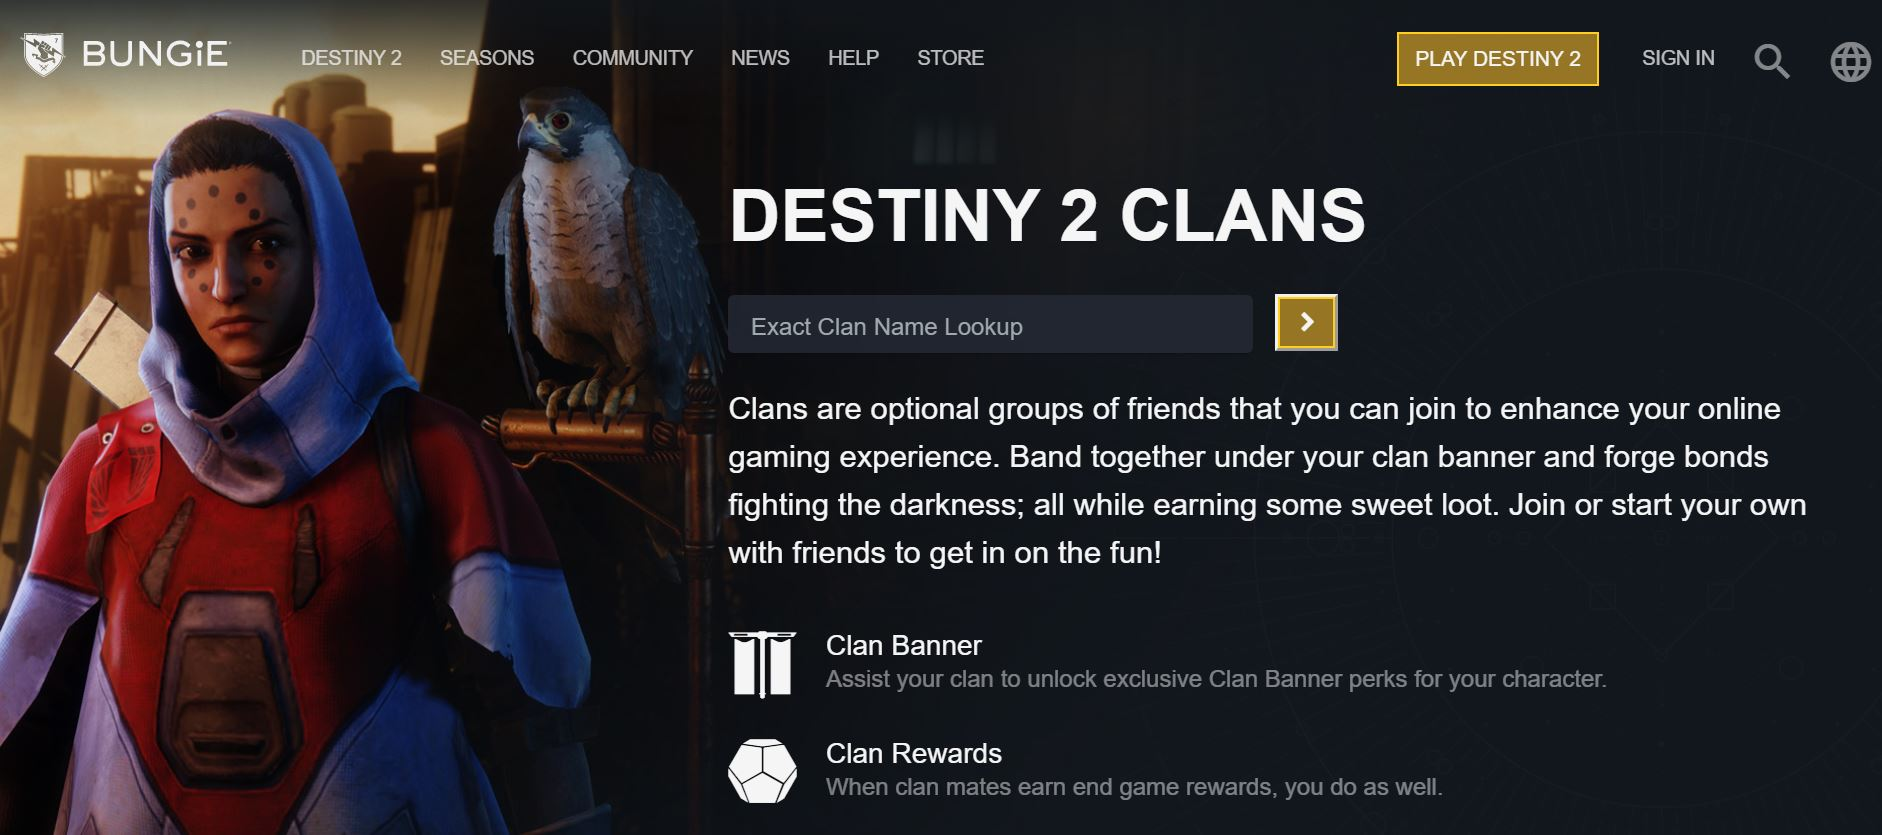 Making Clan of Destiny 2 Via Bungie Website